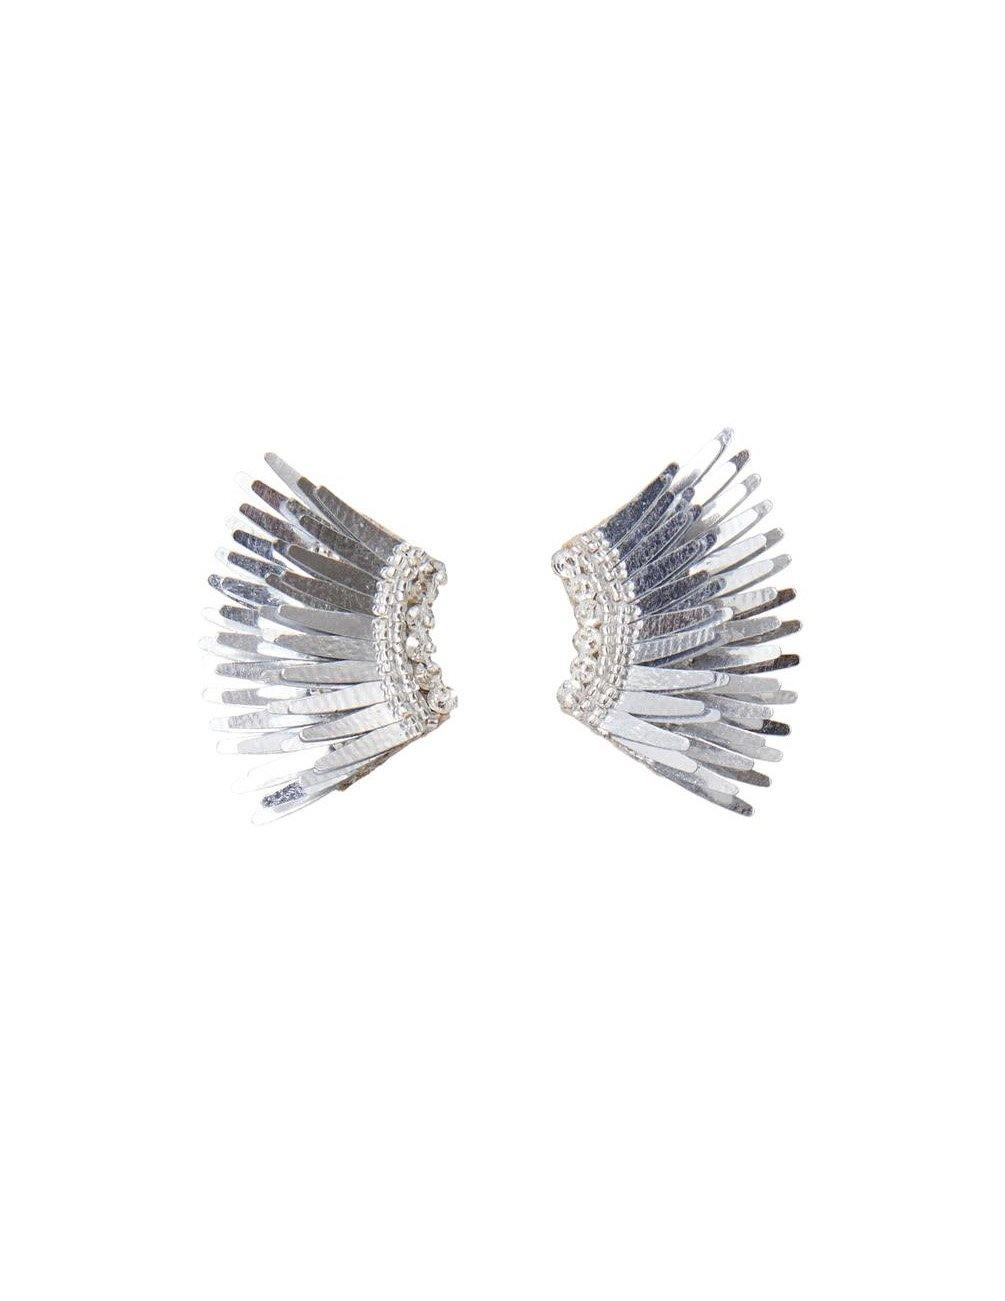 Silver Mini Madeline Earrings